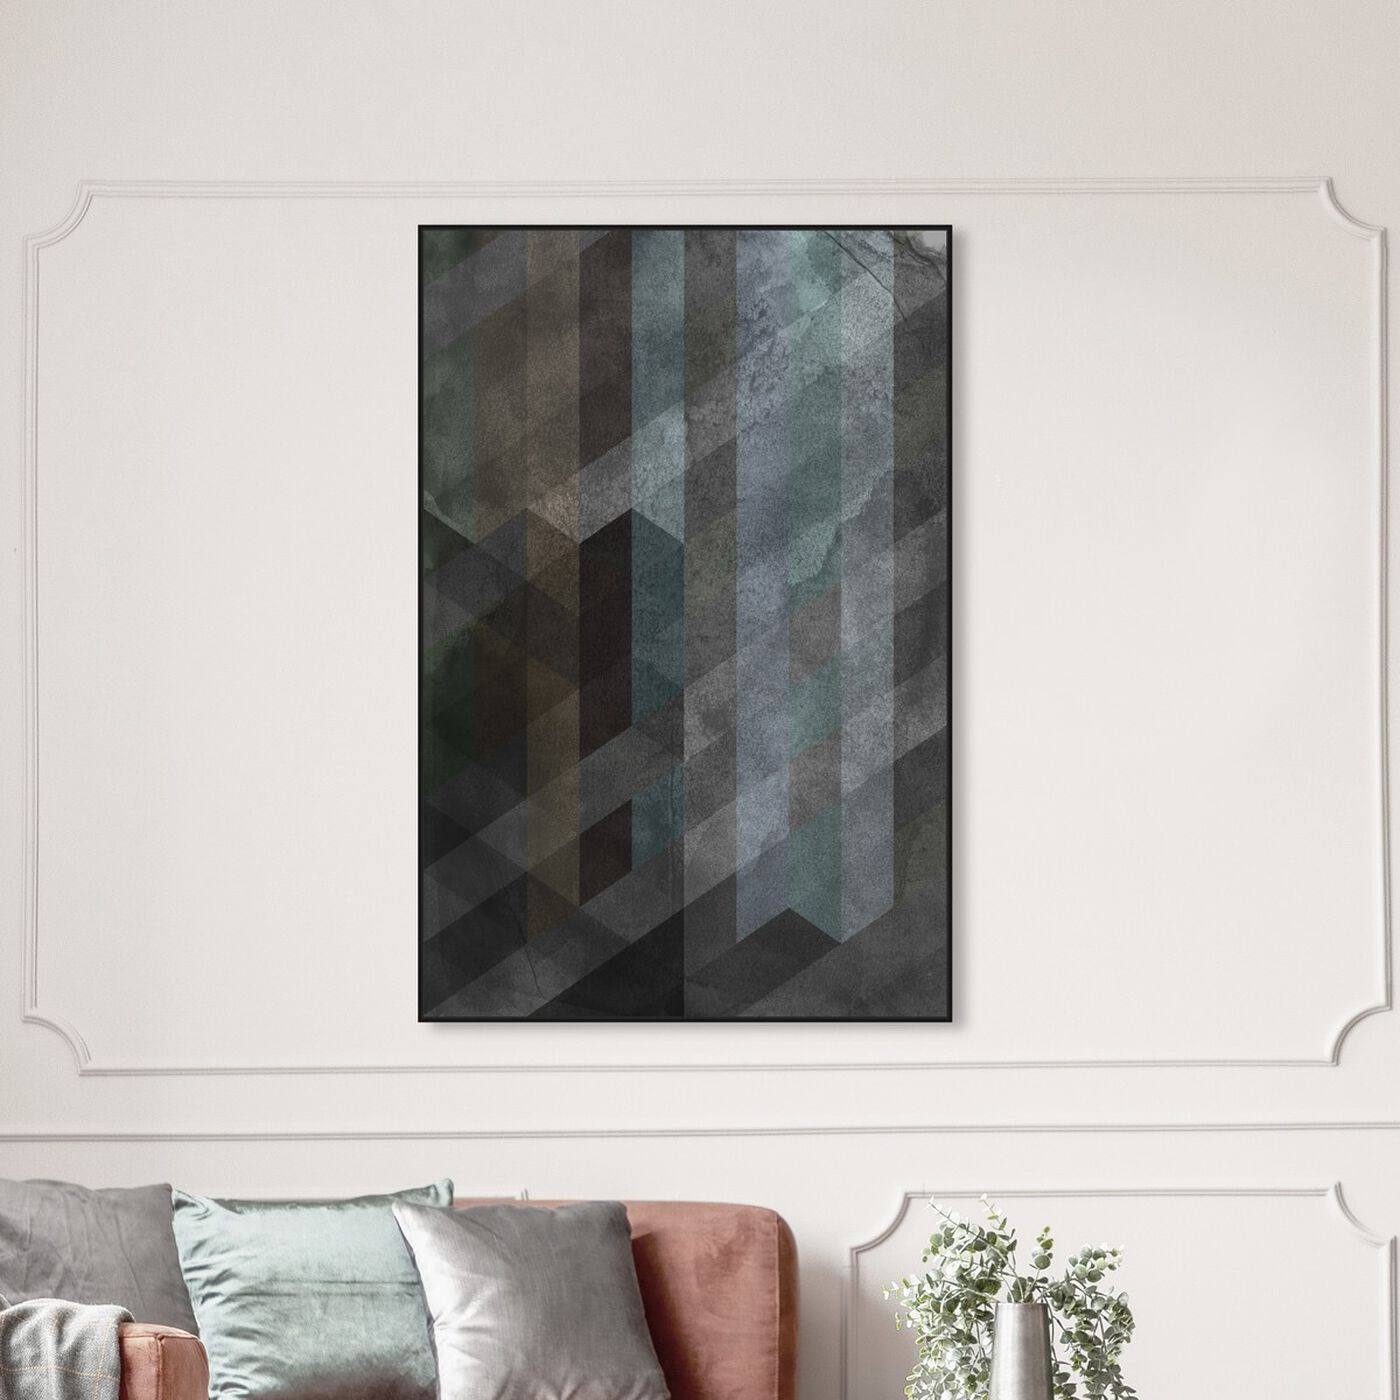 Hanging view of Steel featuring abstract and textures art.